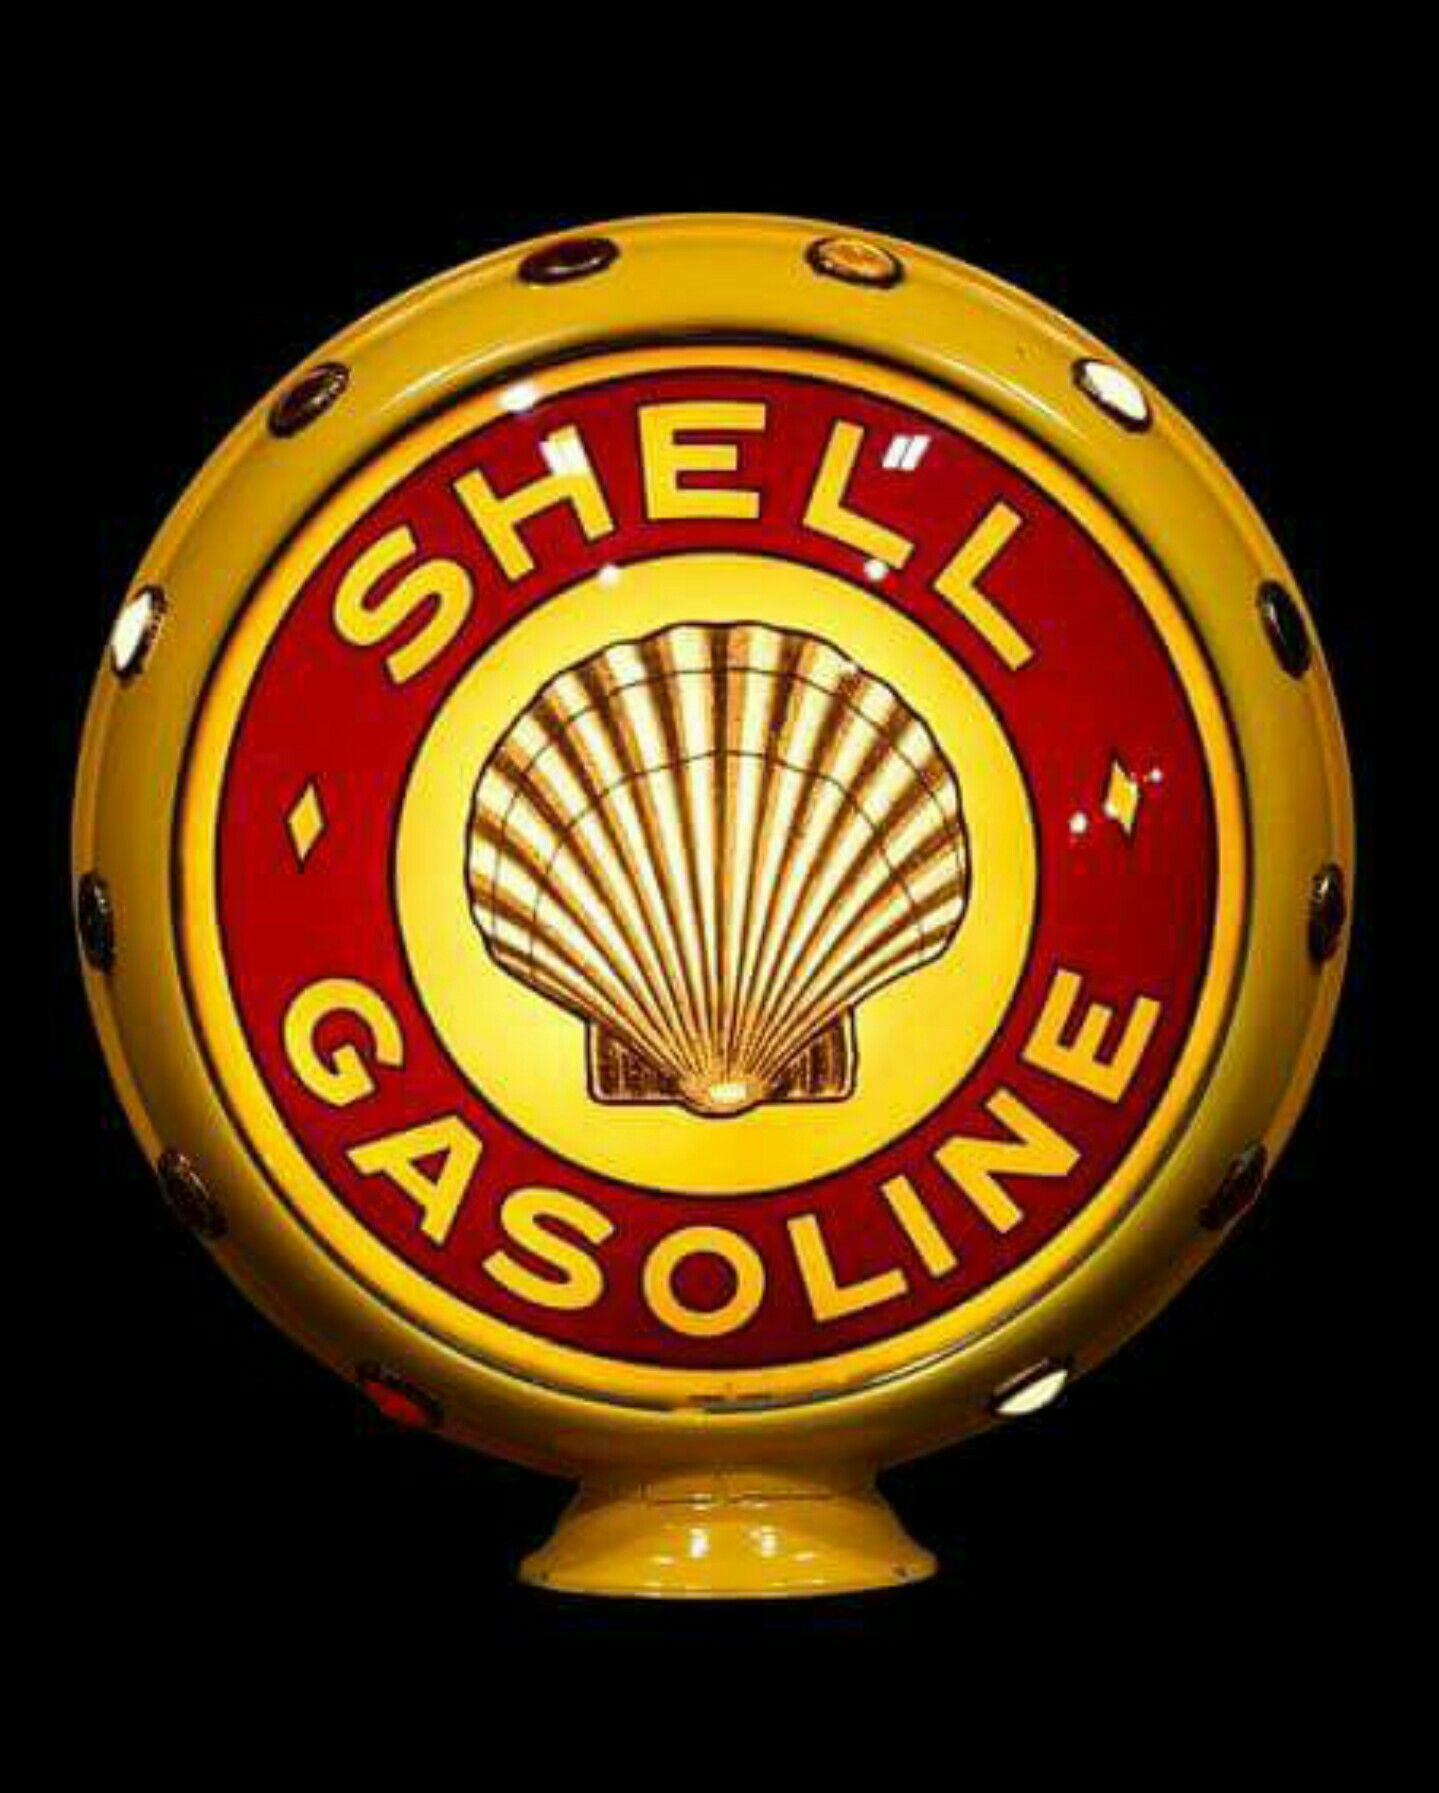 SHELL Lube Style Gas Pump Globes Gasoline Selection Glass Petrol Pump Globes